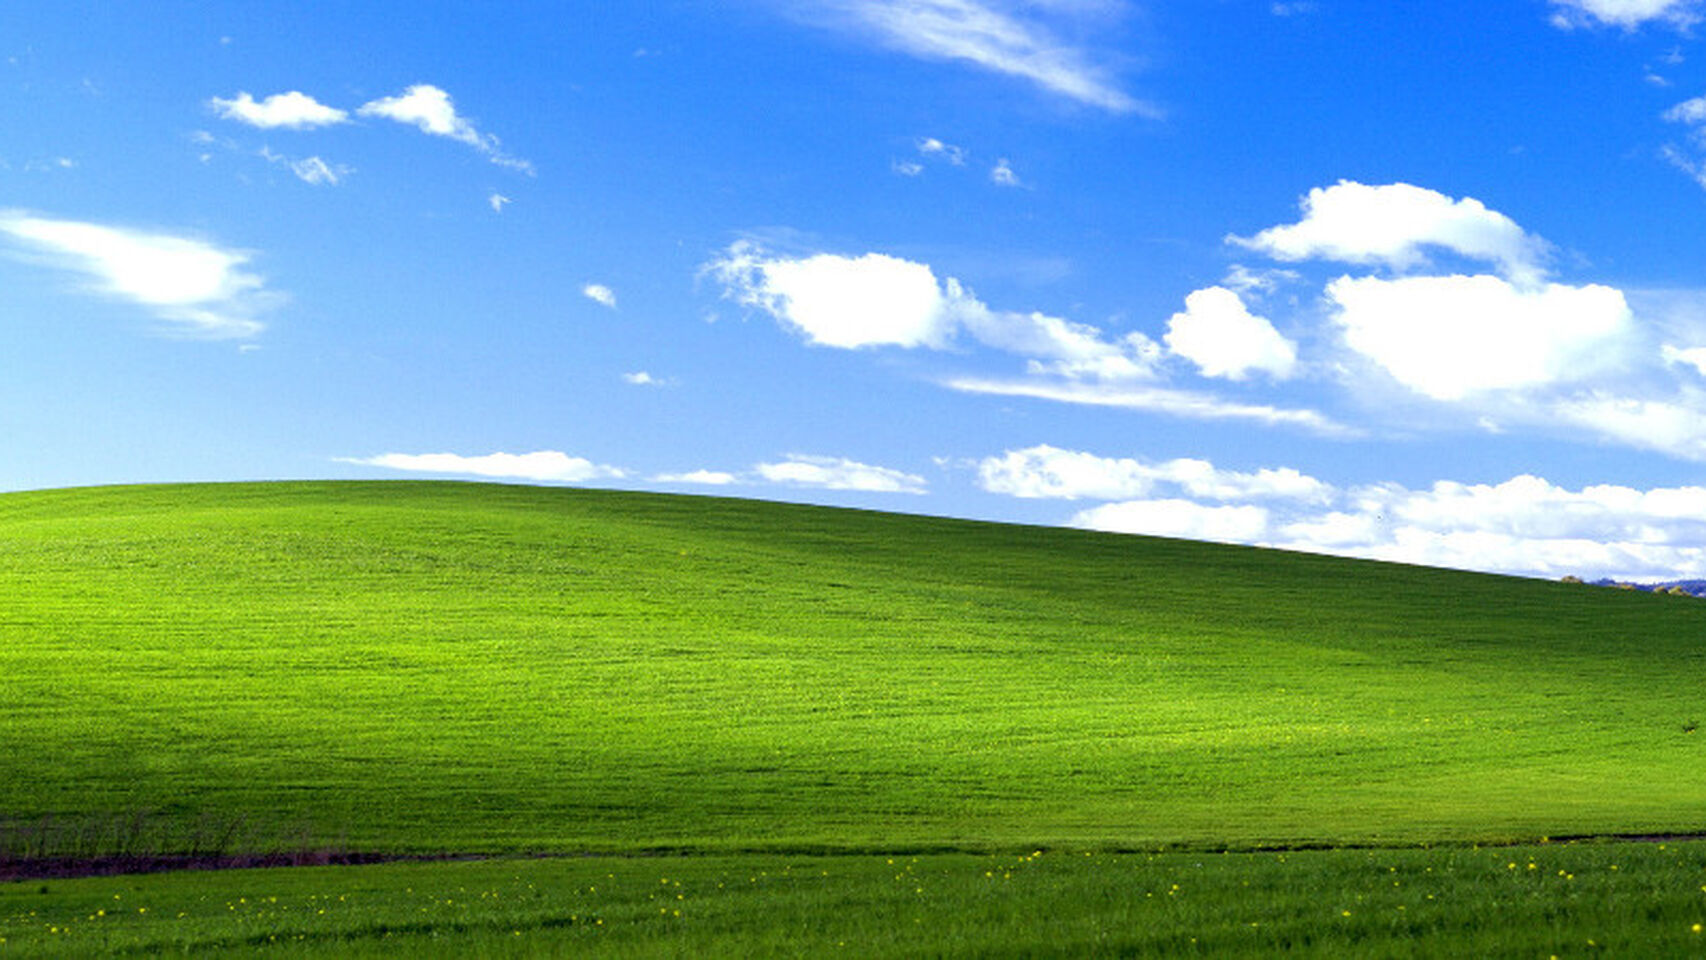 wallpaper windows xp